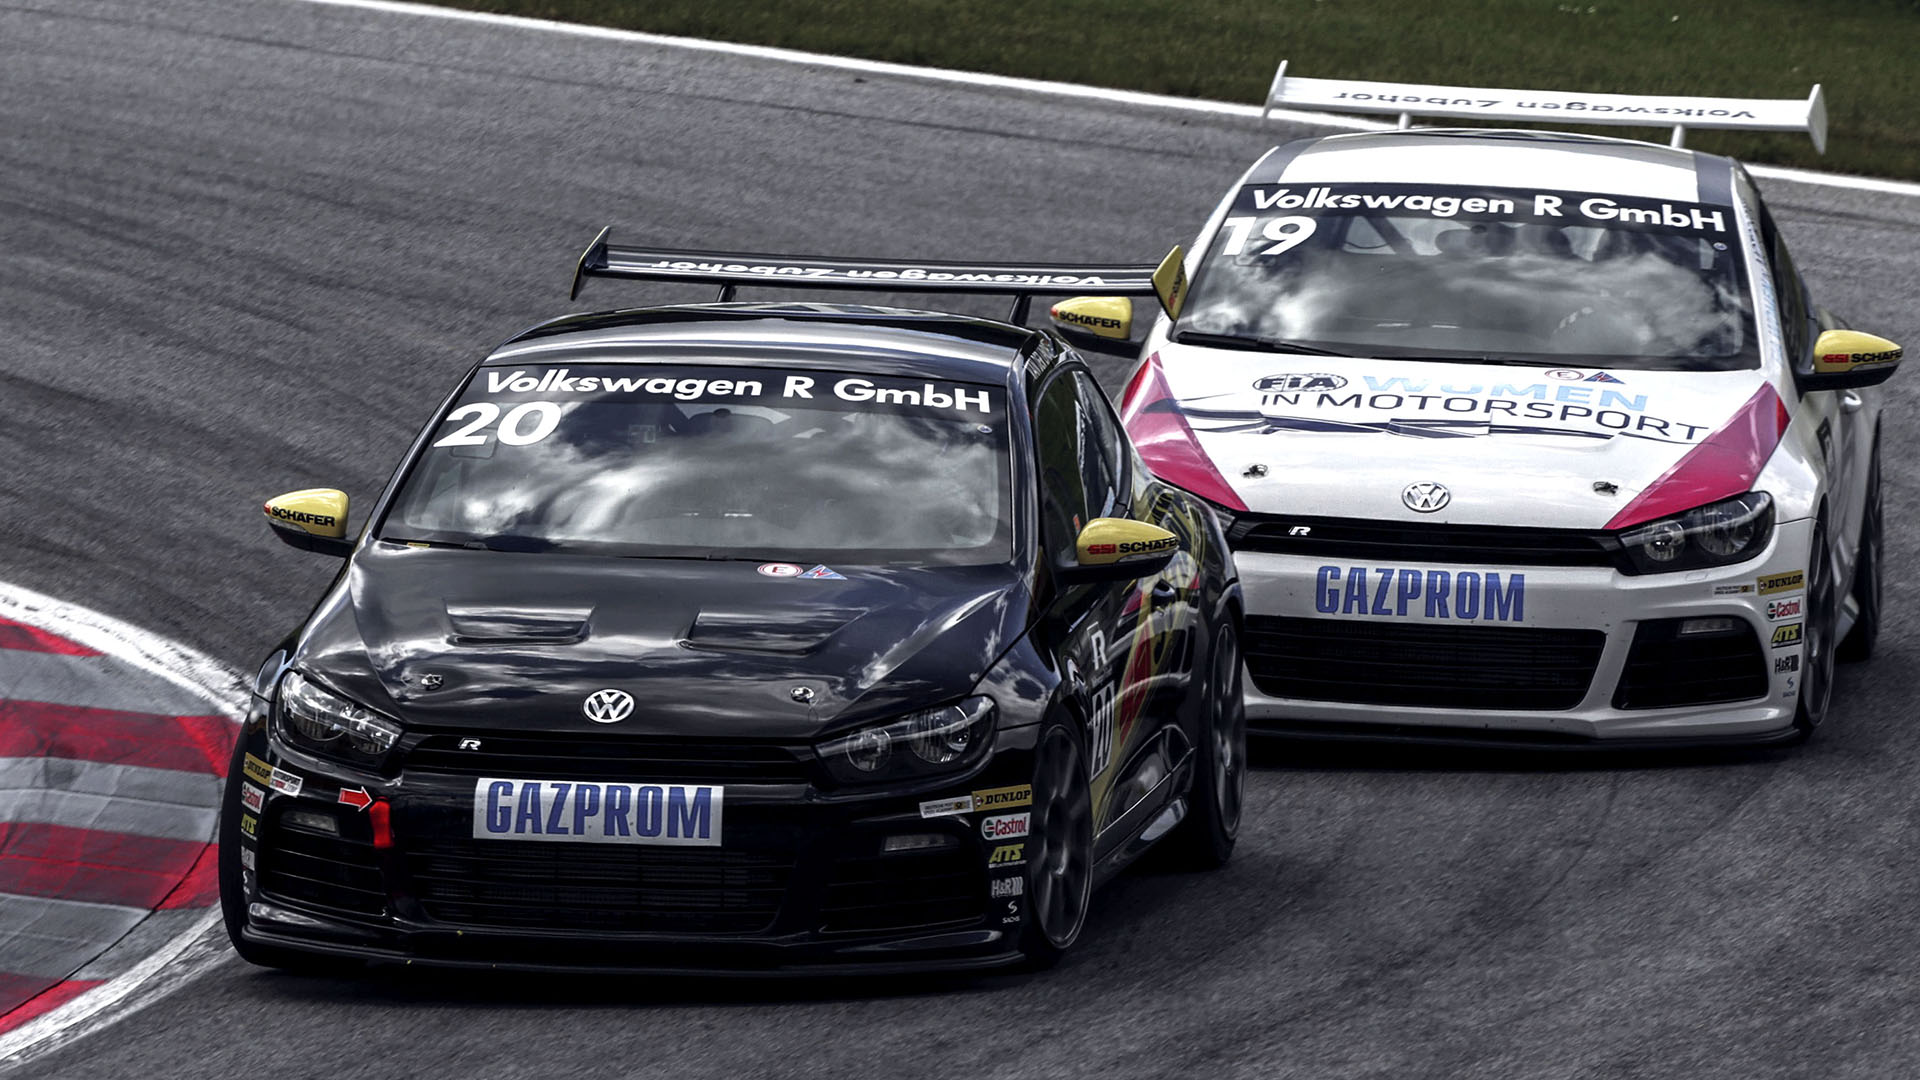 Volkswagen Golf on racetrack